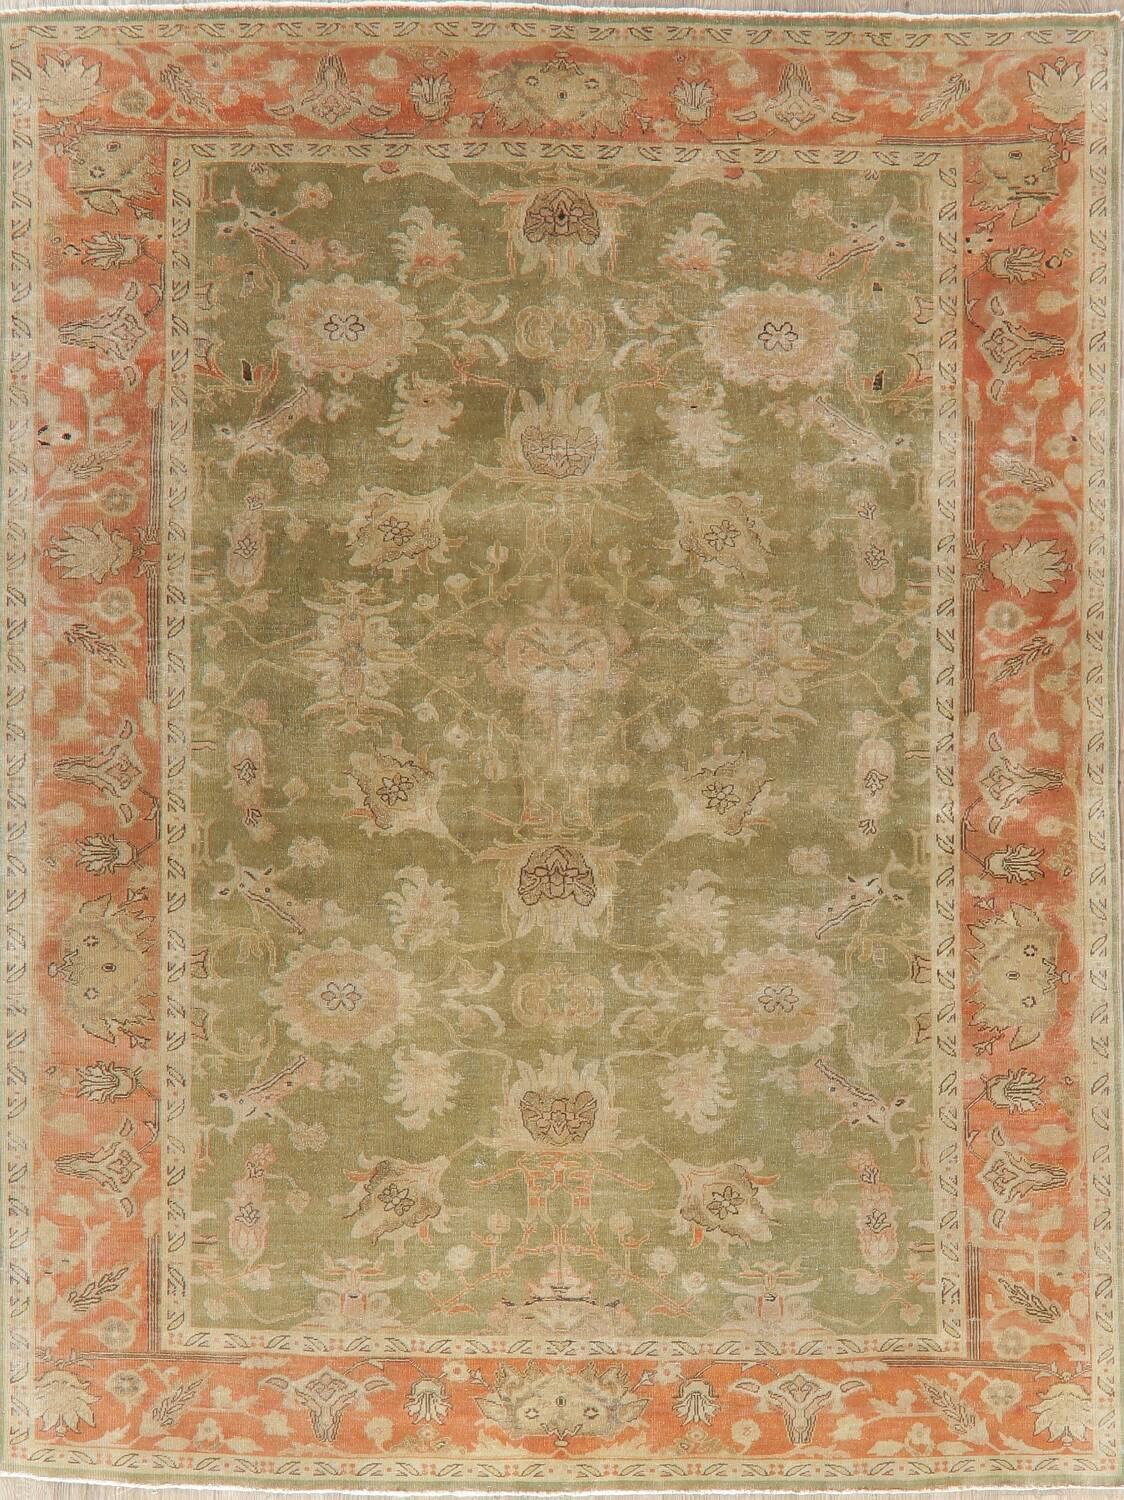 Antique Floral Oushak Green & Rust Oriental Area Rug 8x10 image 1